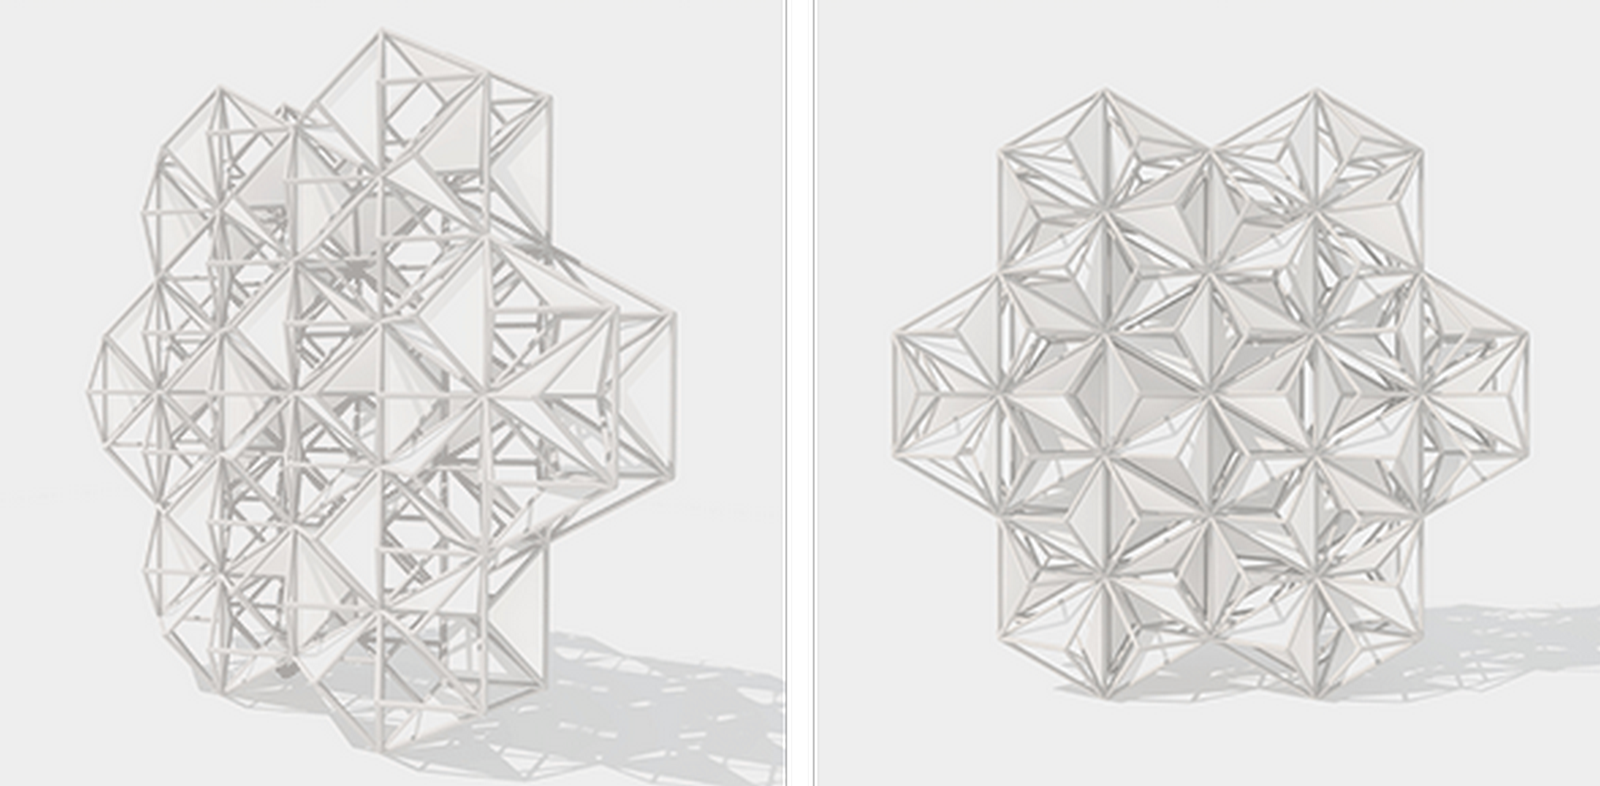 An Intricate Tridimensional Facade for Expo 2020 Dubai revealed by the Japan Pavilion - Sheet5